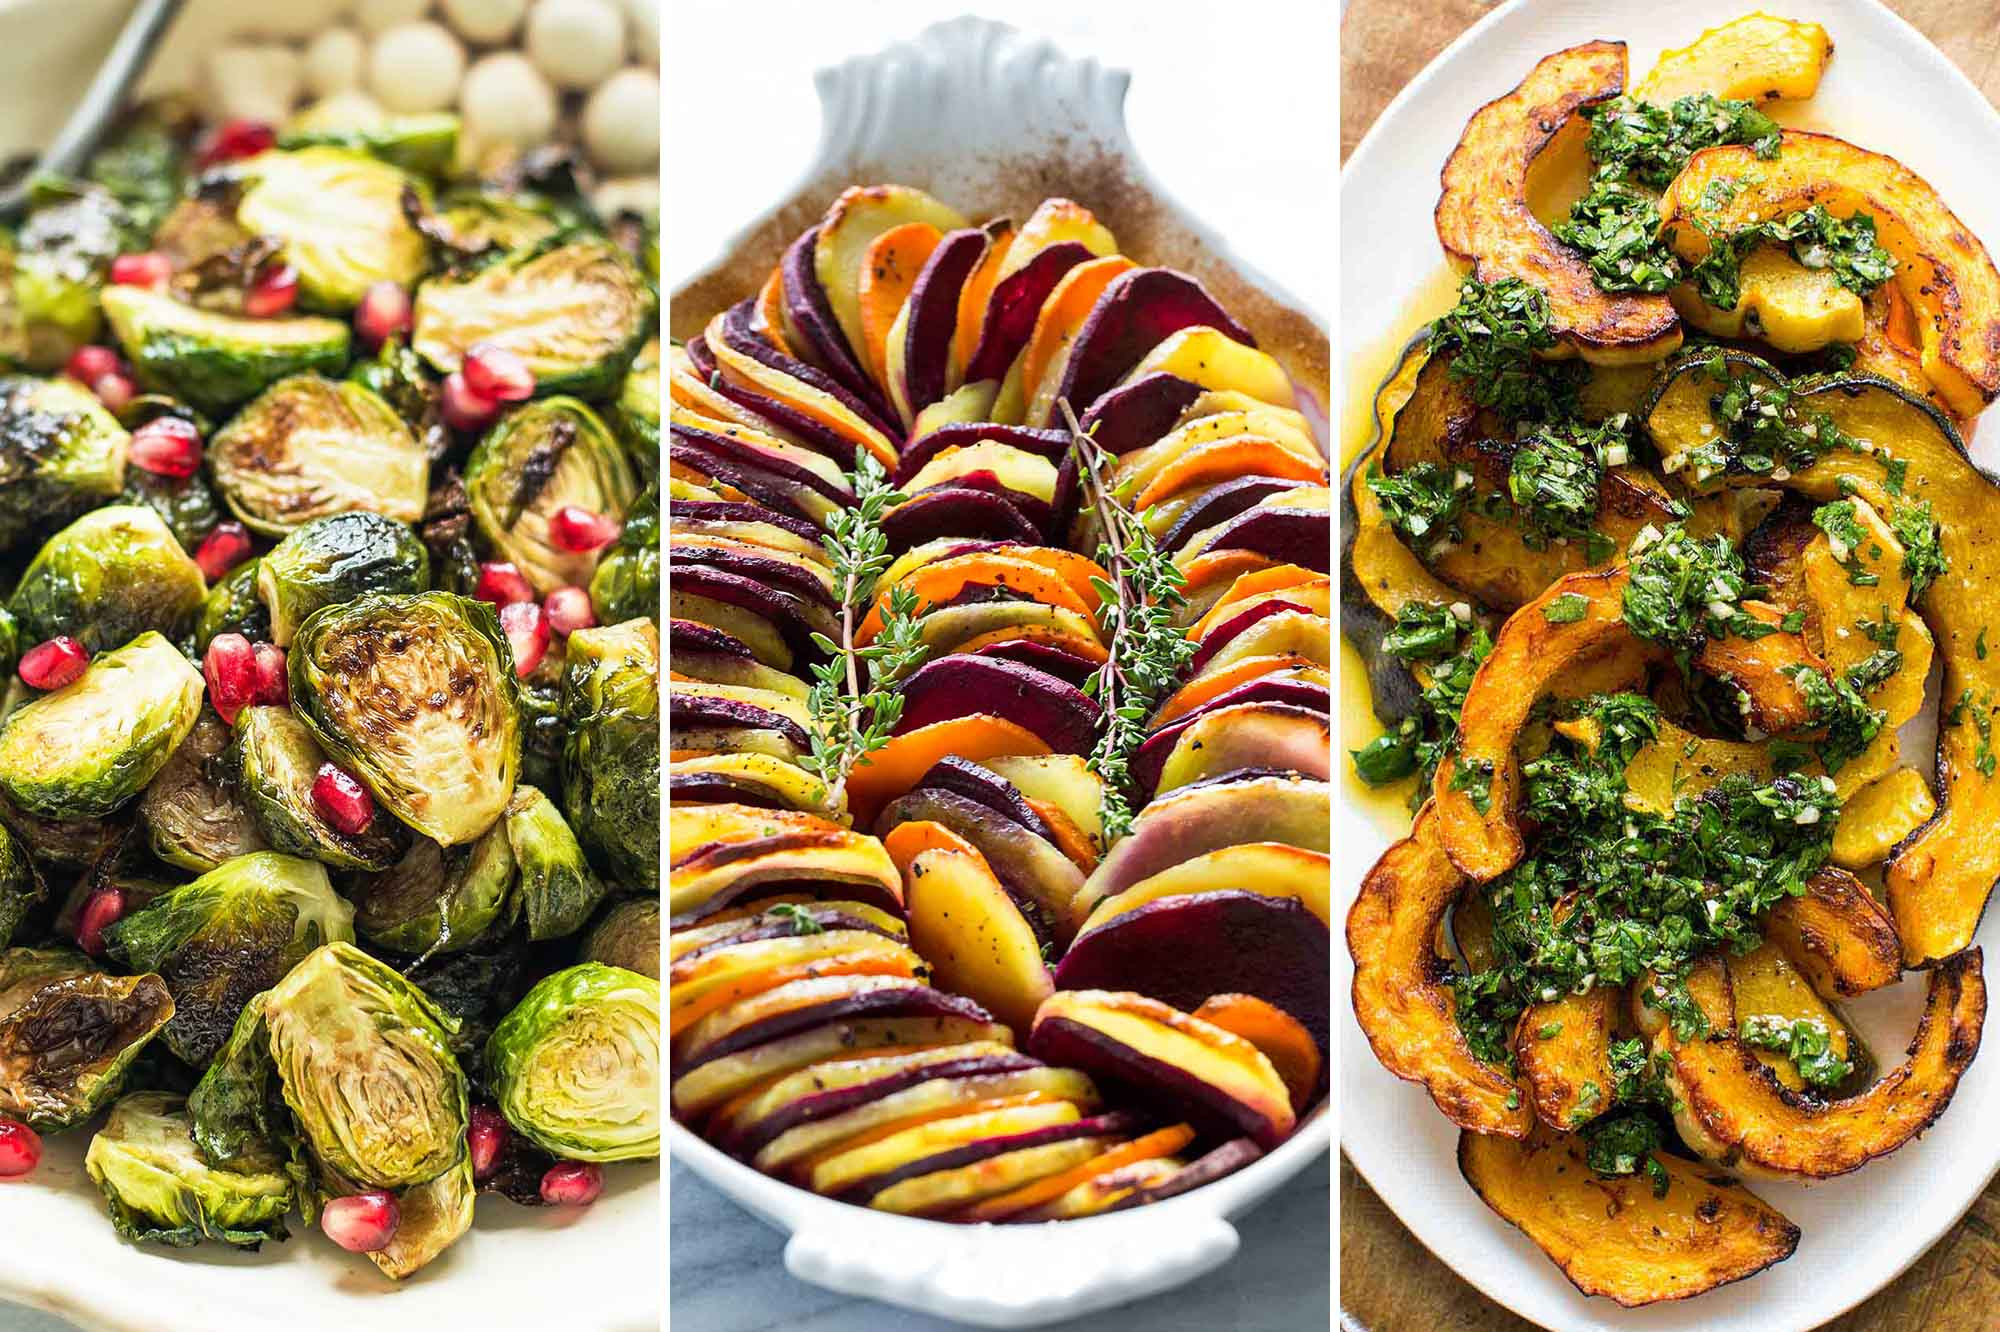 Vegetable Side Dish To Serve With Prime Rib  10 Best Side Dishes to Serve with a Holiday Roast